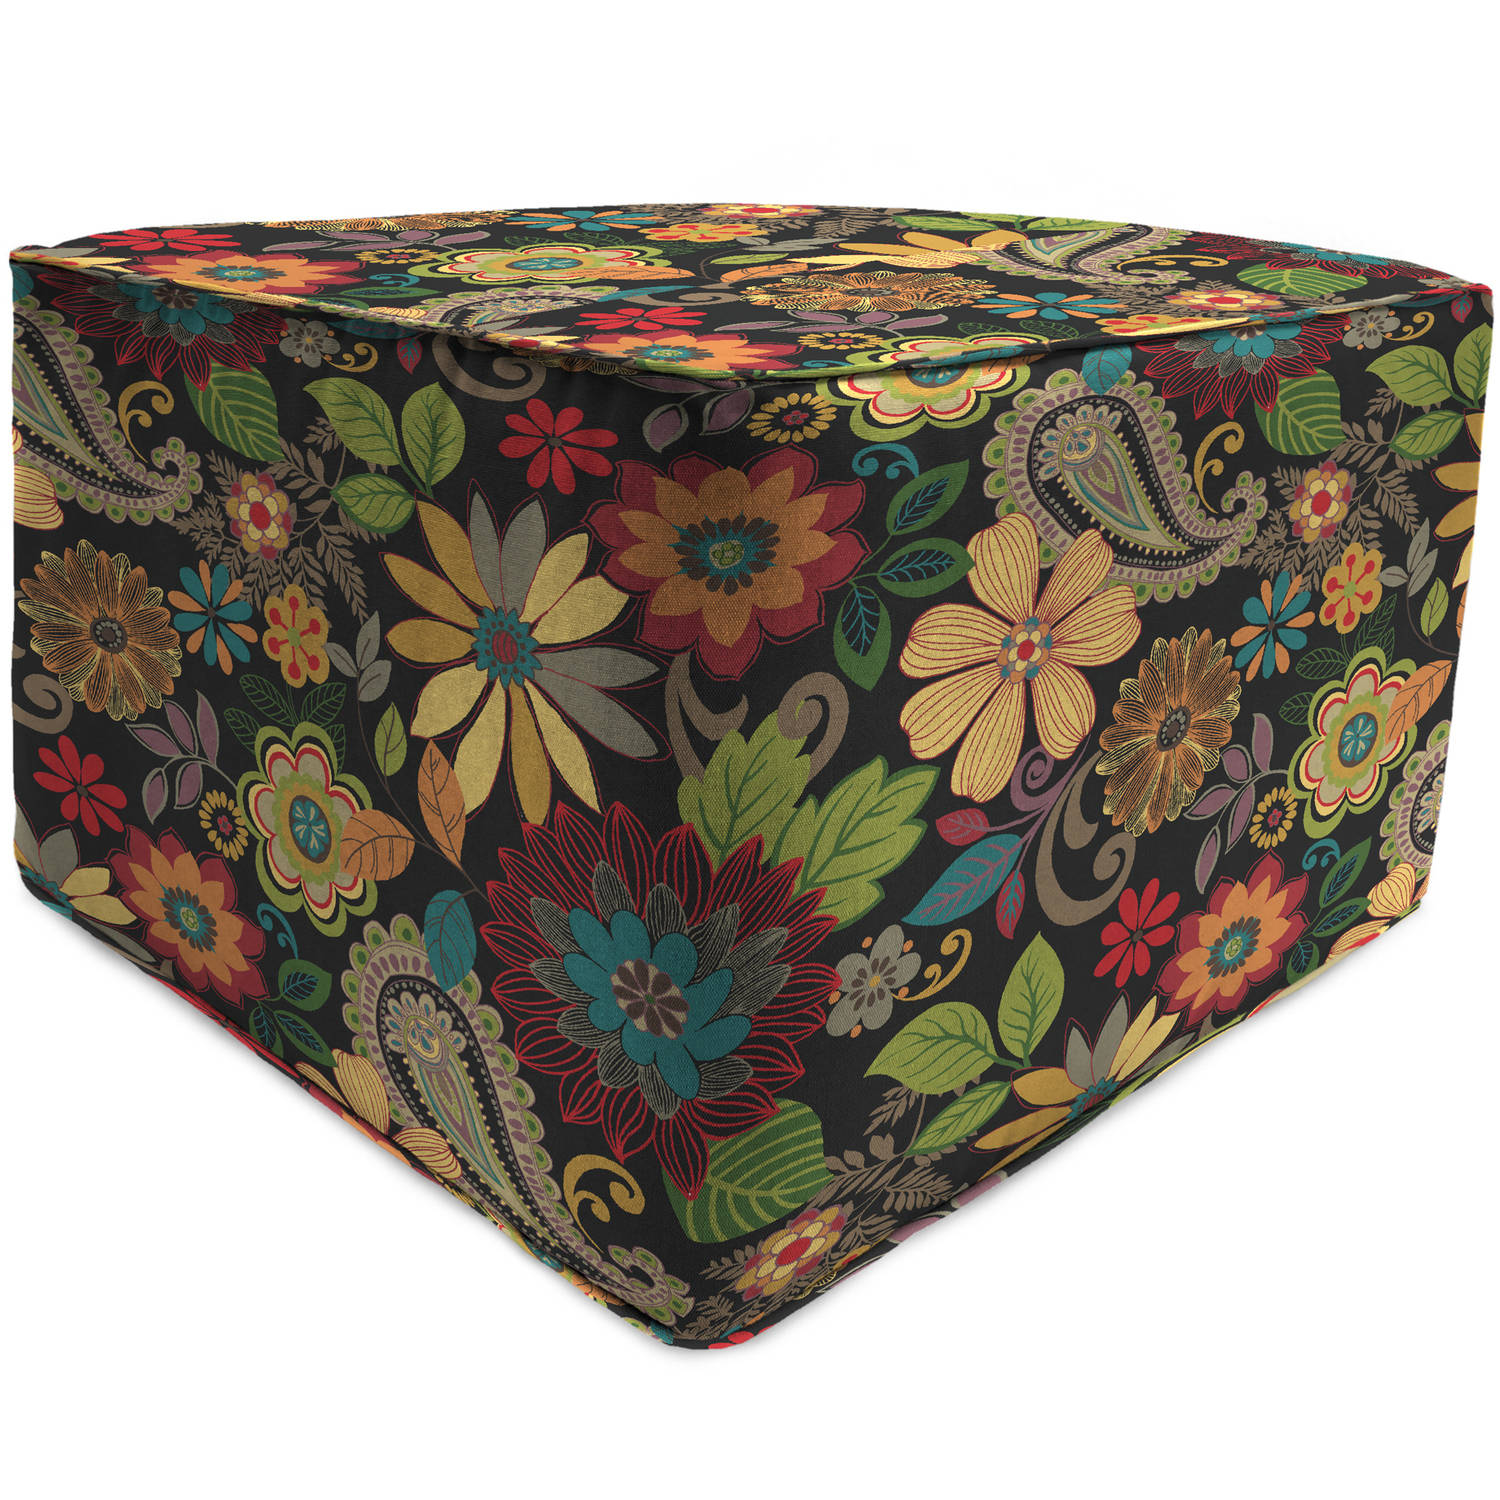 Jordan Manufacturing Outdoor Patio Square Pouf Ottoman